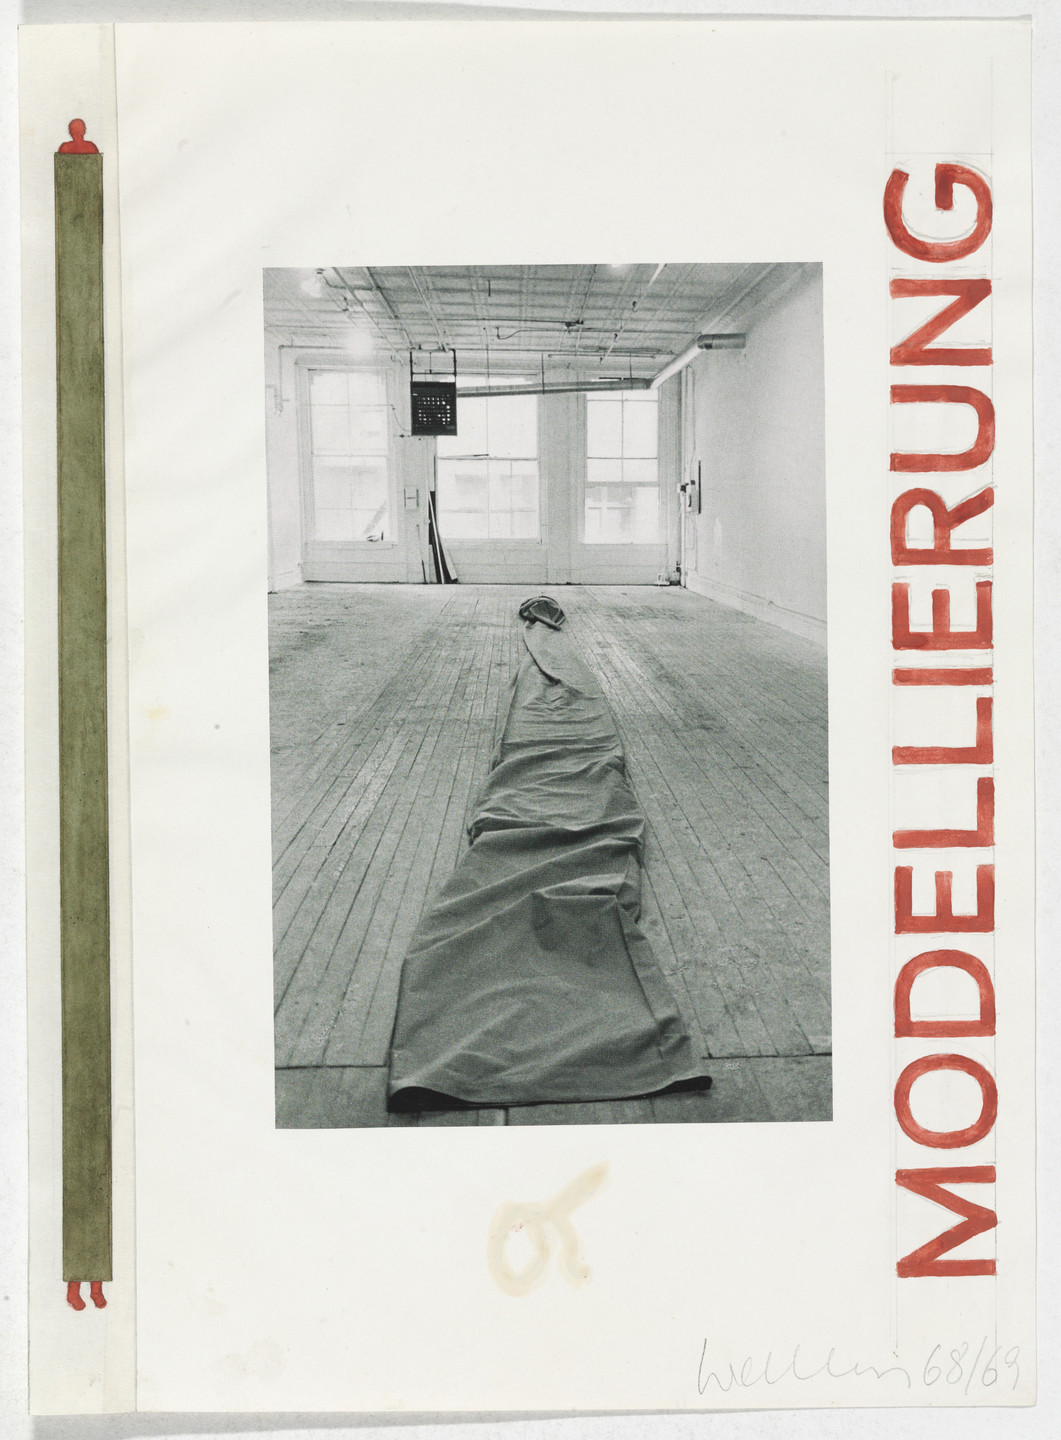 Franz Erhard Walther. Work Drawing: Cloth Tube. 1968/1969